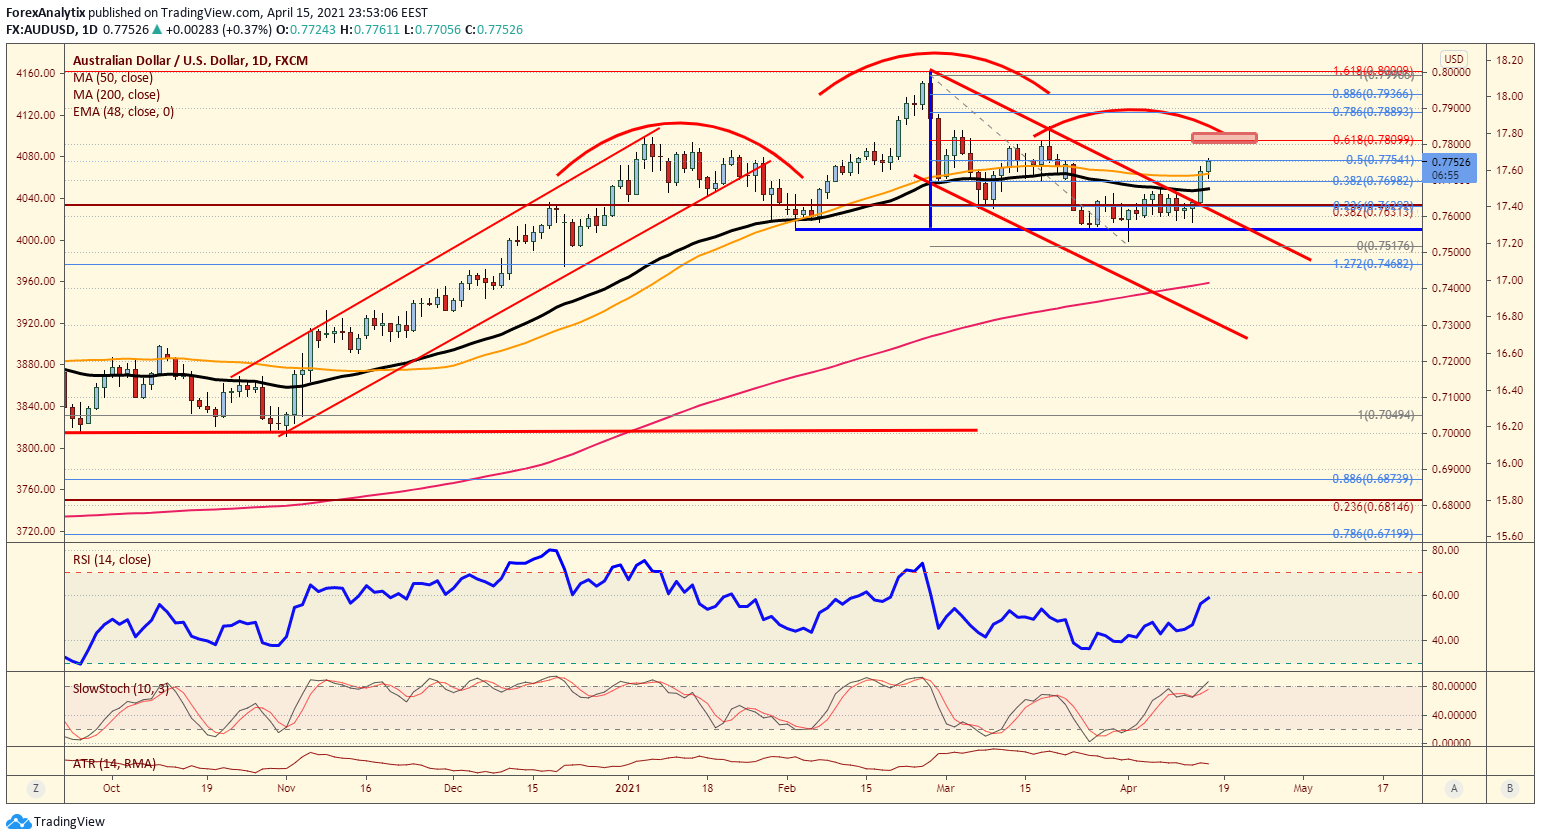 AUD/USD Daily Chart.